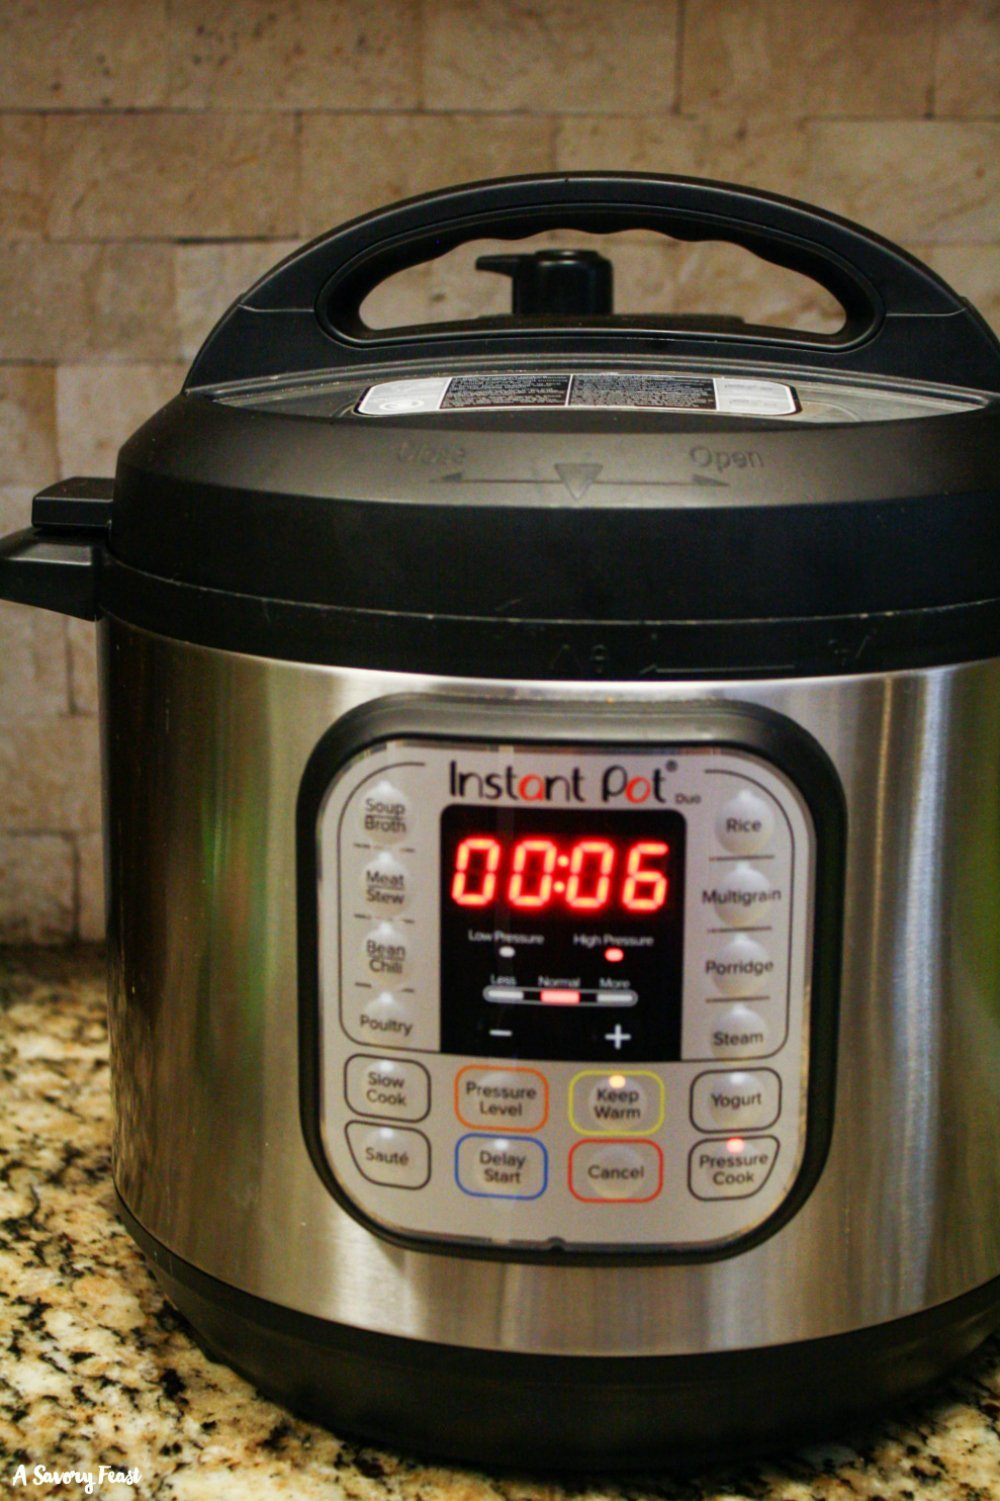 How to meal prep using an Instant Pot